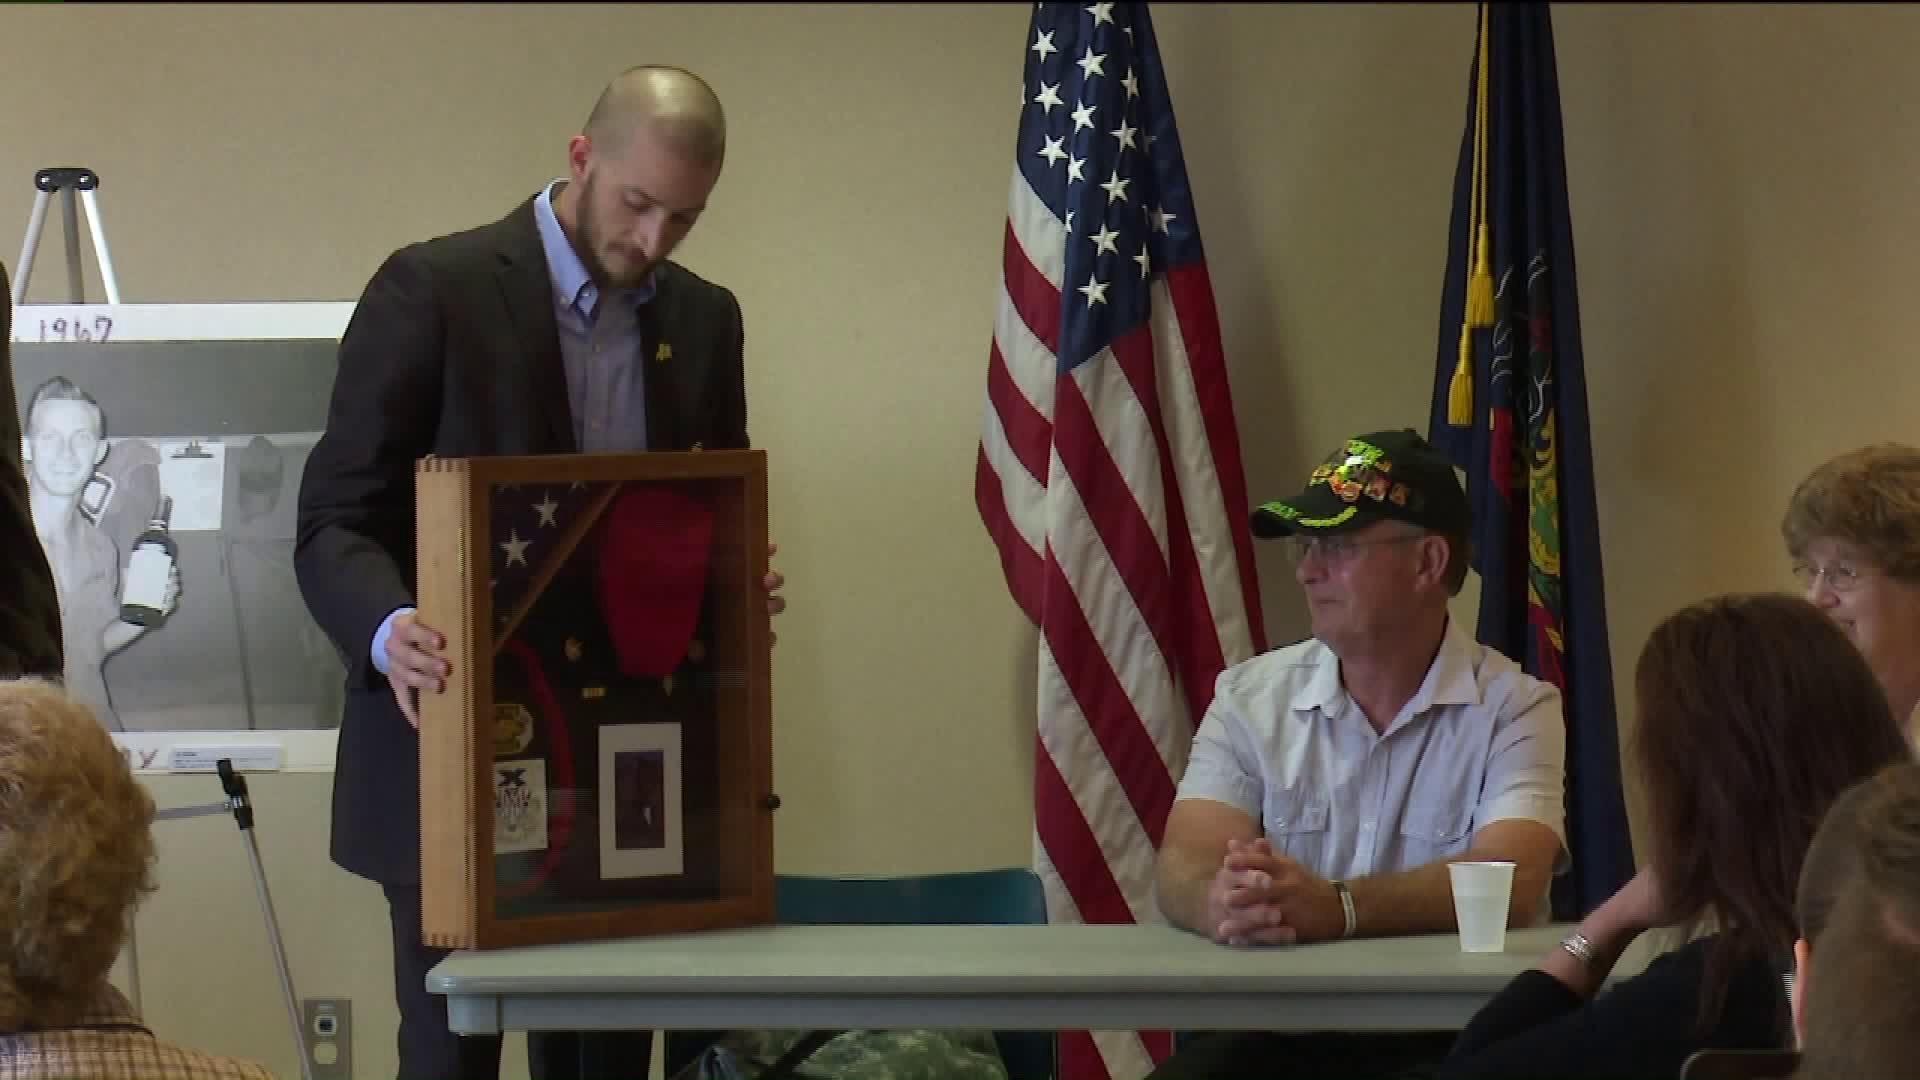 Vietnam Veteran Gives Back to University by Helping with Photography Project